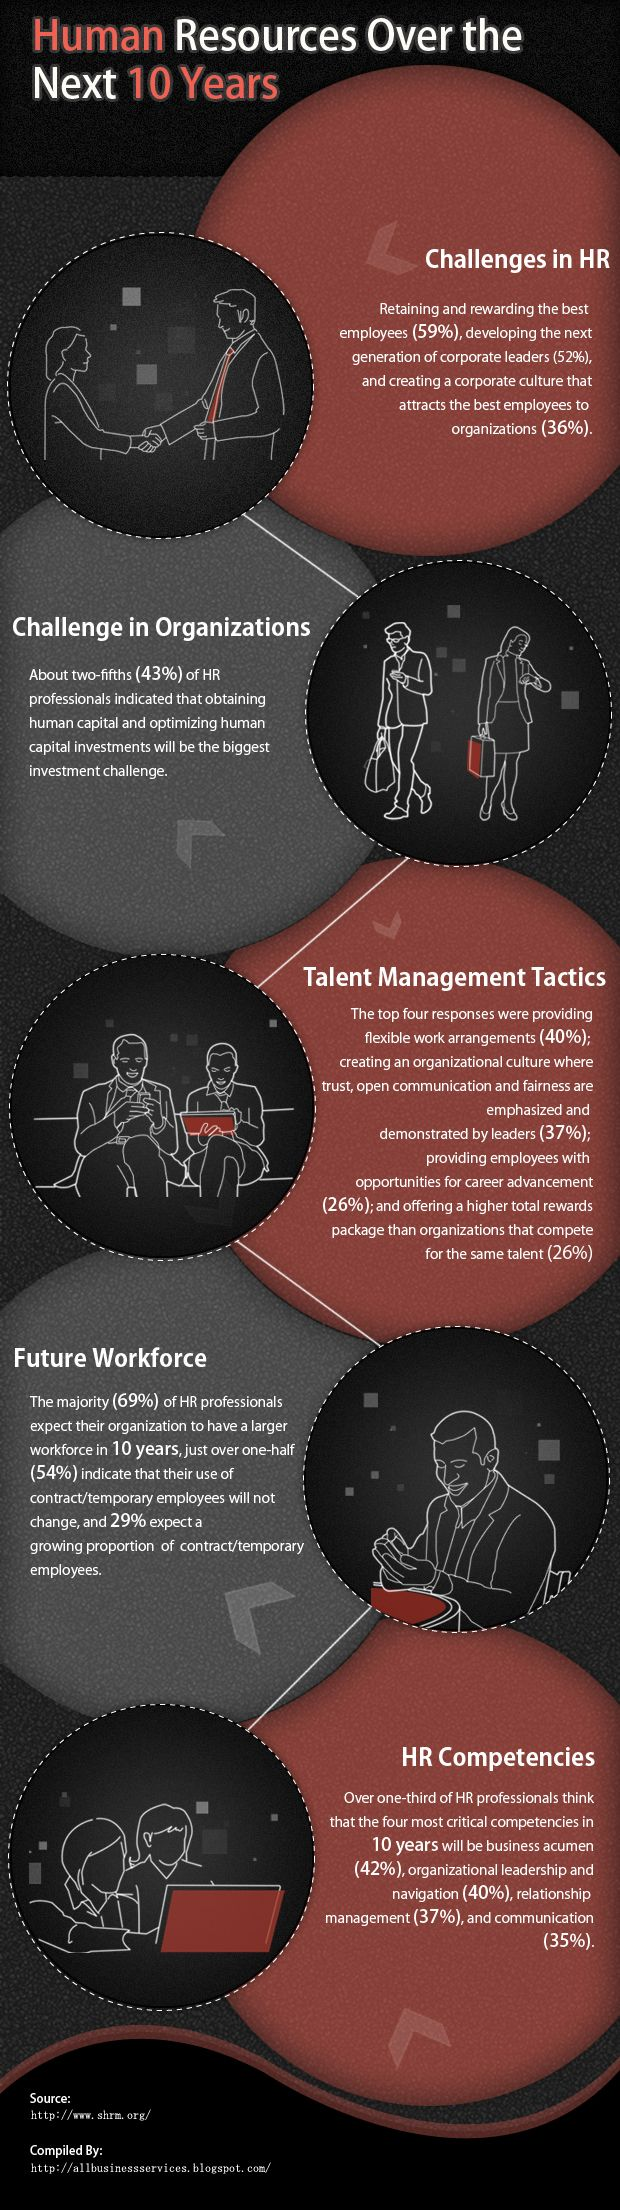 This infographic is briefly elaborating about the structure of HR in the next coming 10 years. The different tactics, Competencies and Workforce etc o